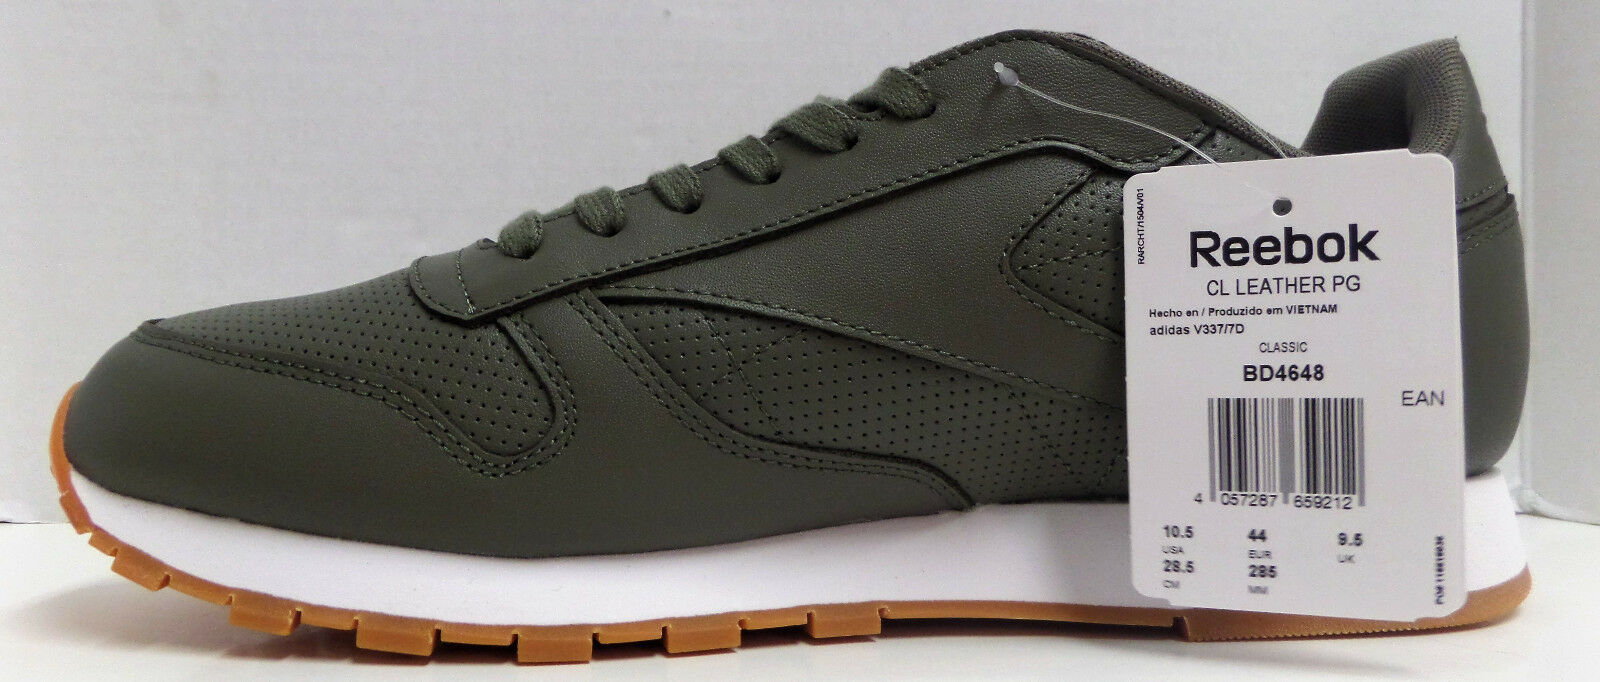 4b542f7da10 Reebok Classic Leather PG Olive Green White Trainer Shoe US 10.5 ...